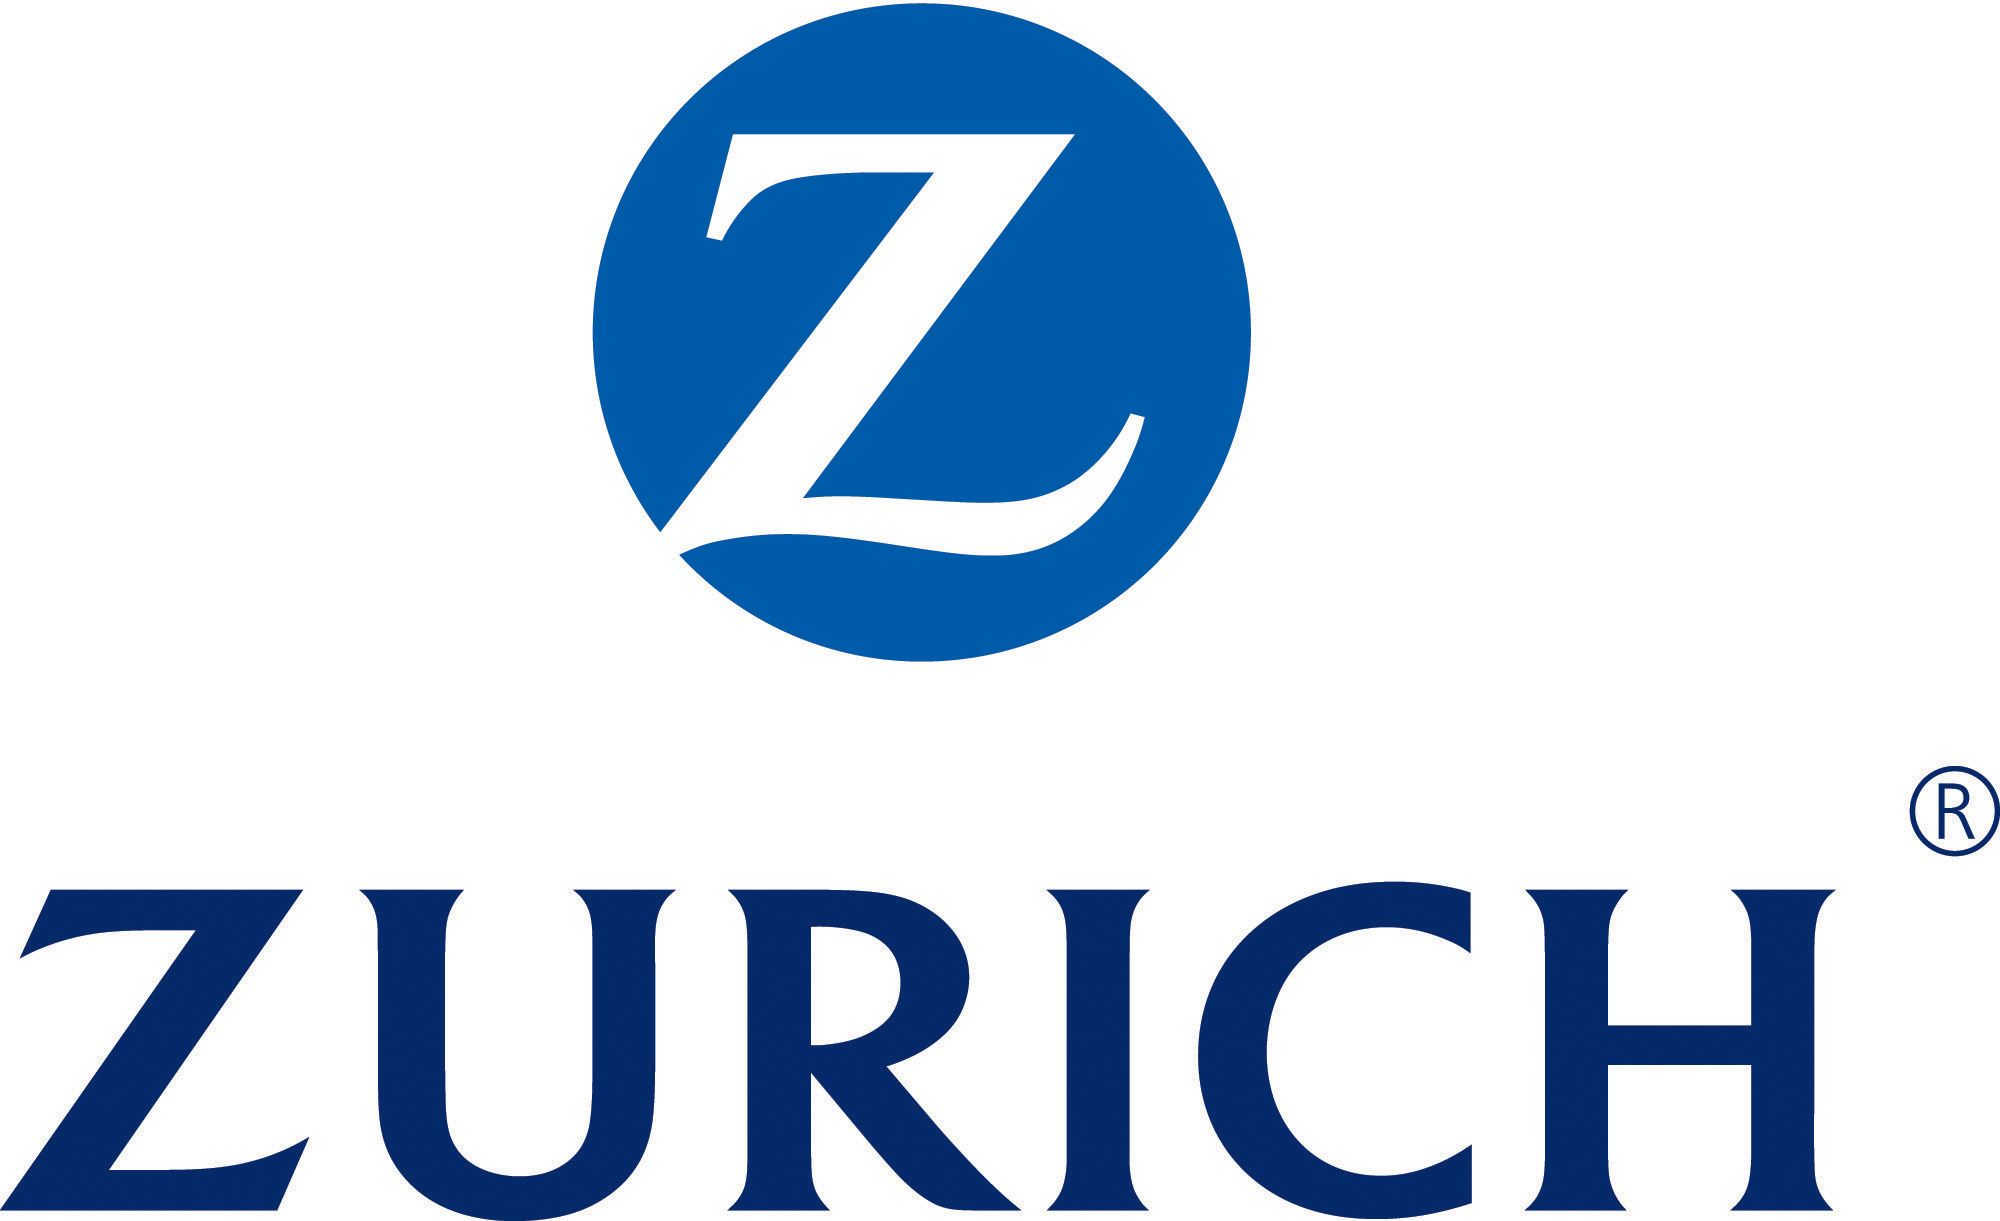 In North America Zurich Www Zurichna Com Is A Leading